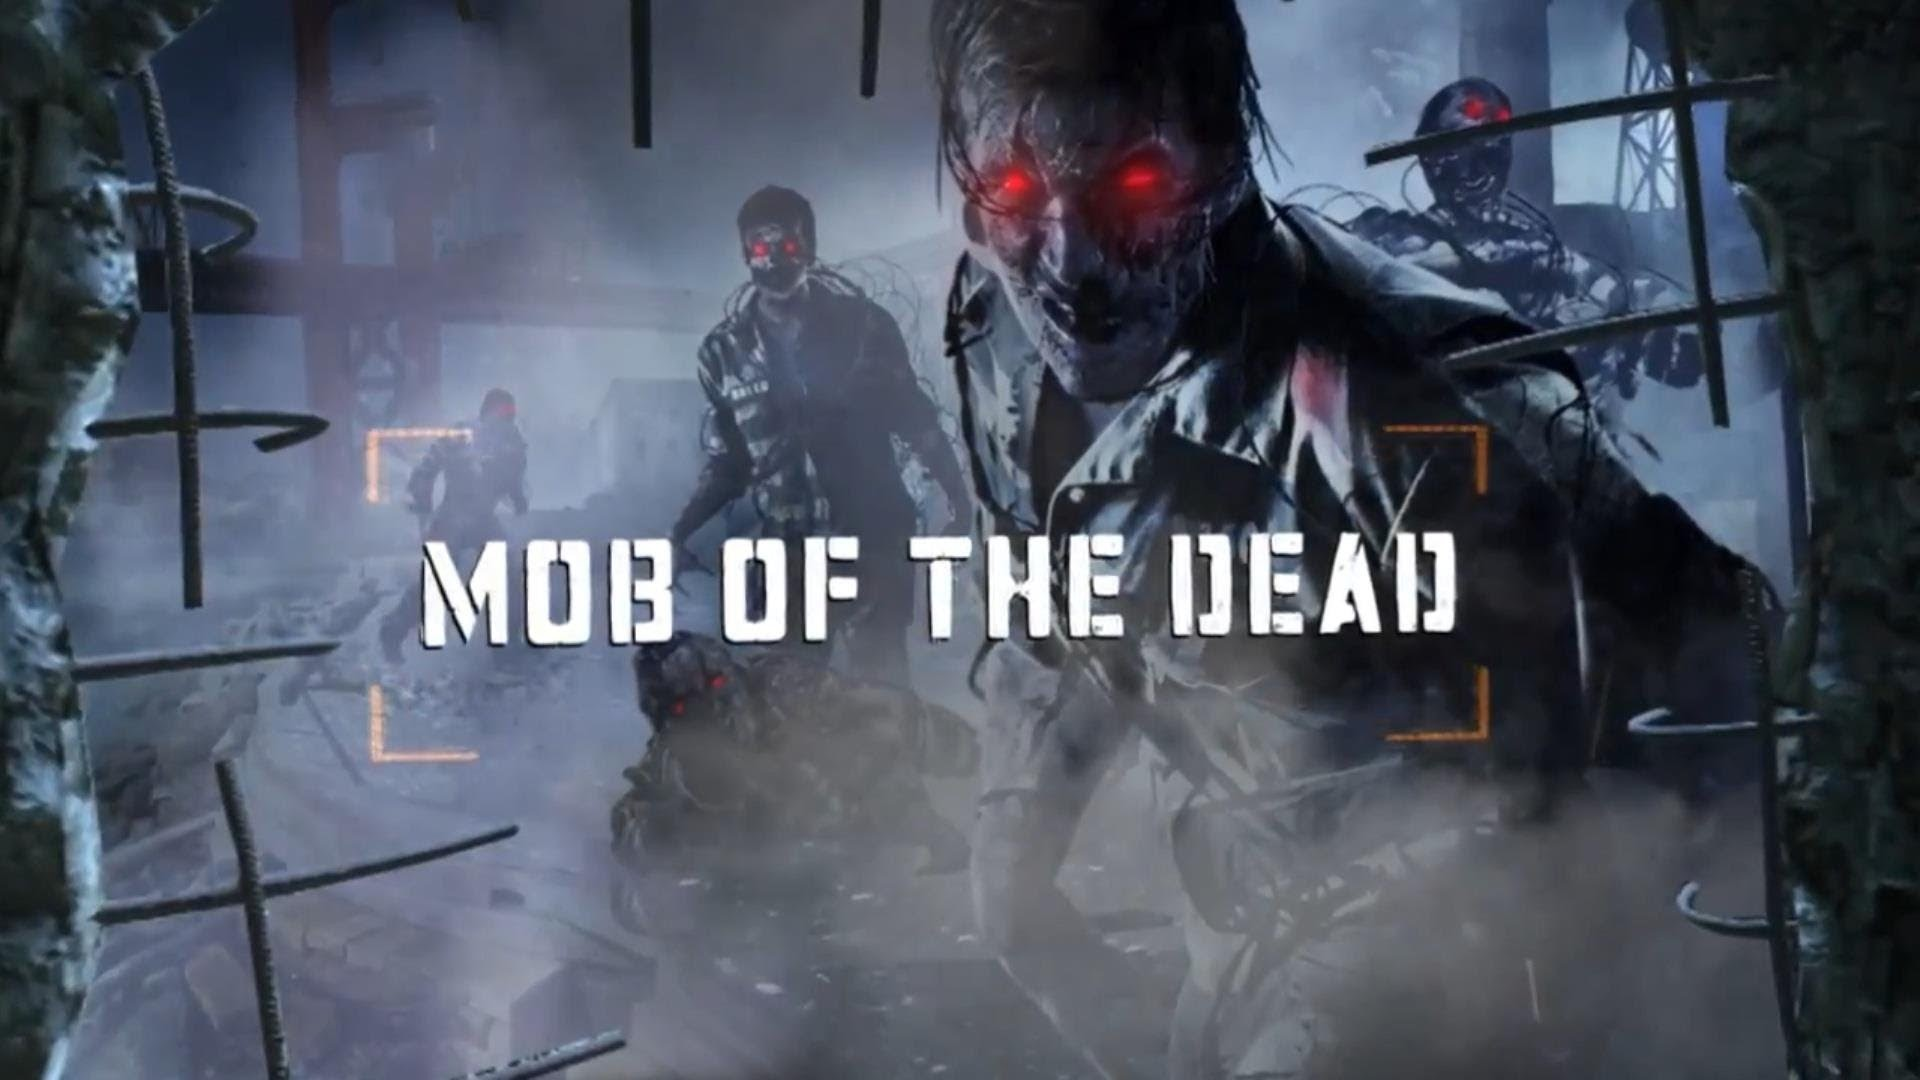 Mob Of The Dead Wallpaper 86 Images